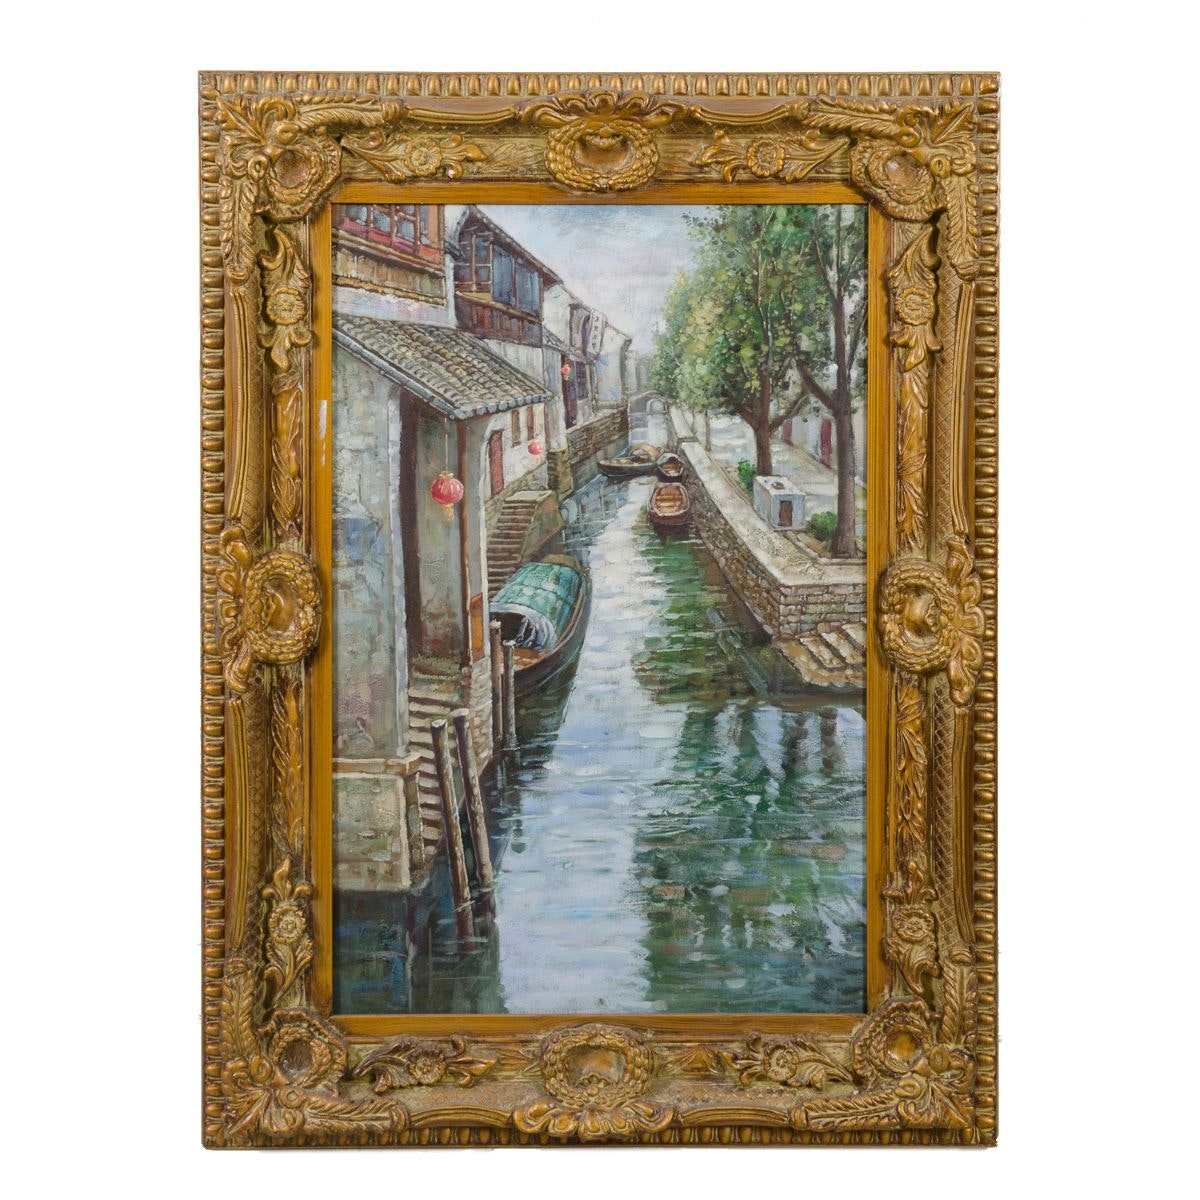 Oil Painting of a Canal Scene